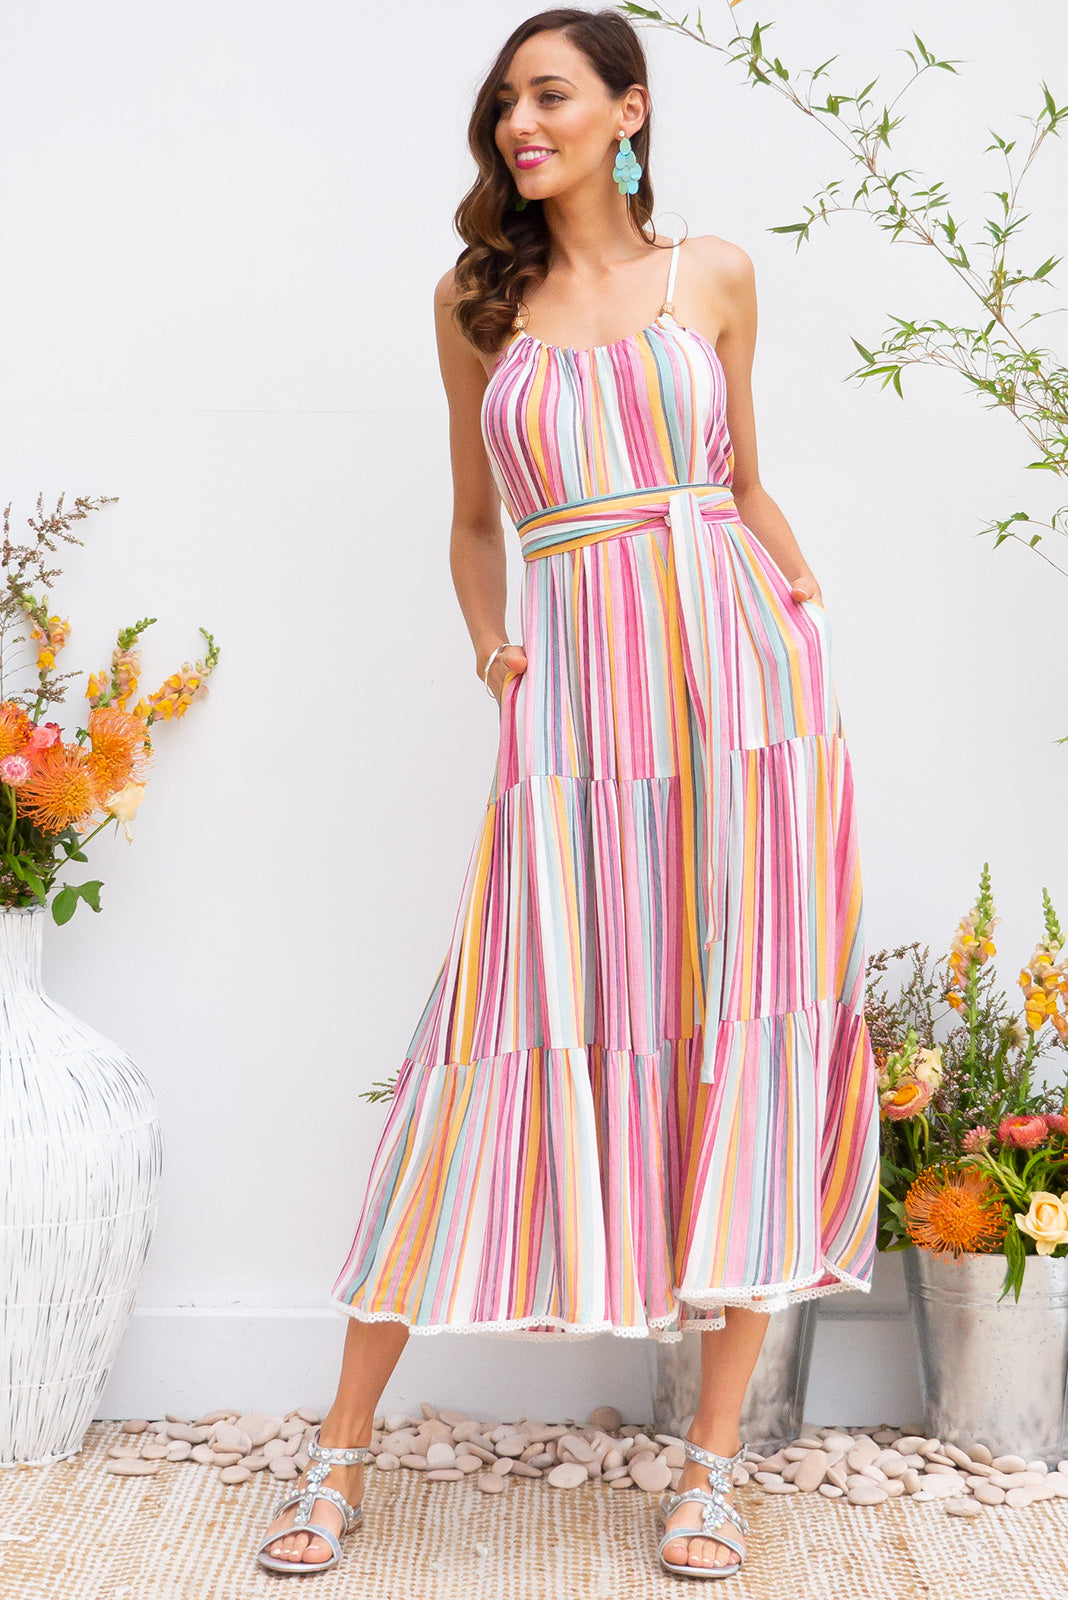 Lulu Loves Super Stripe Maxi length crinkle rayon tiered dress with a adjustable neckline, side pockets in a gorgeous warm toned stripe print